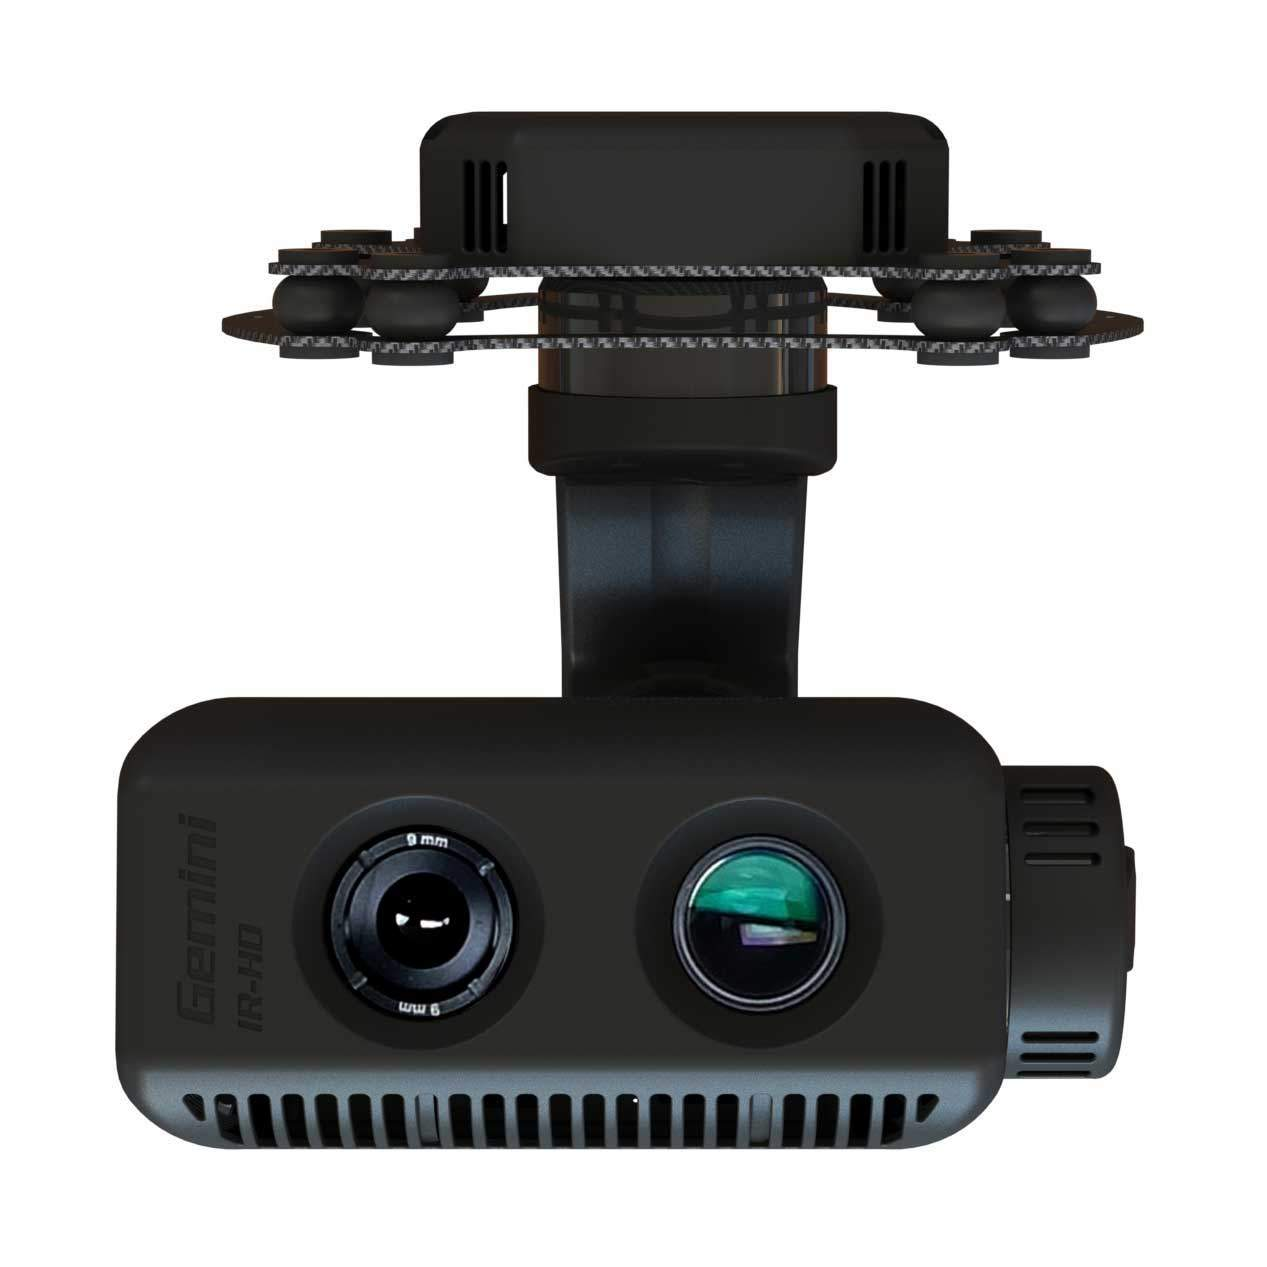 dual sensor ir-eo gimbal for flir camera